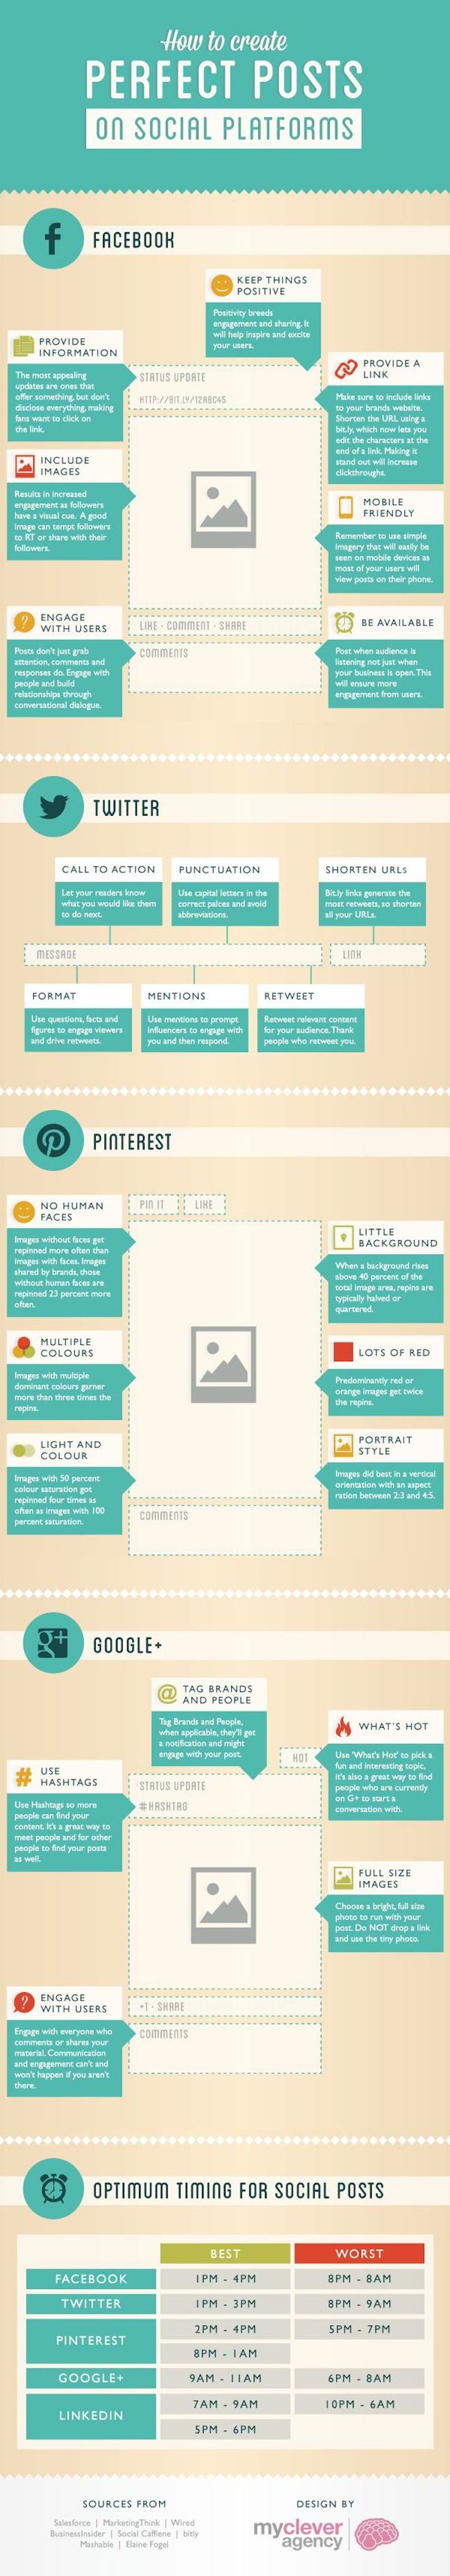 INFOGRAPHIC   How to Create Perfect Posts on Social Media - Everything a blogger needs to know about making their social media presence effective and successful!! See the full post here http://www.backtobuckley.com/blog-tips-how-to-create-perfect-posts-on-social-media/